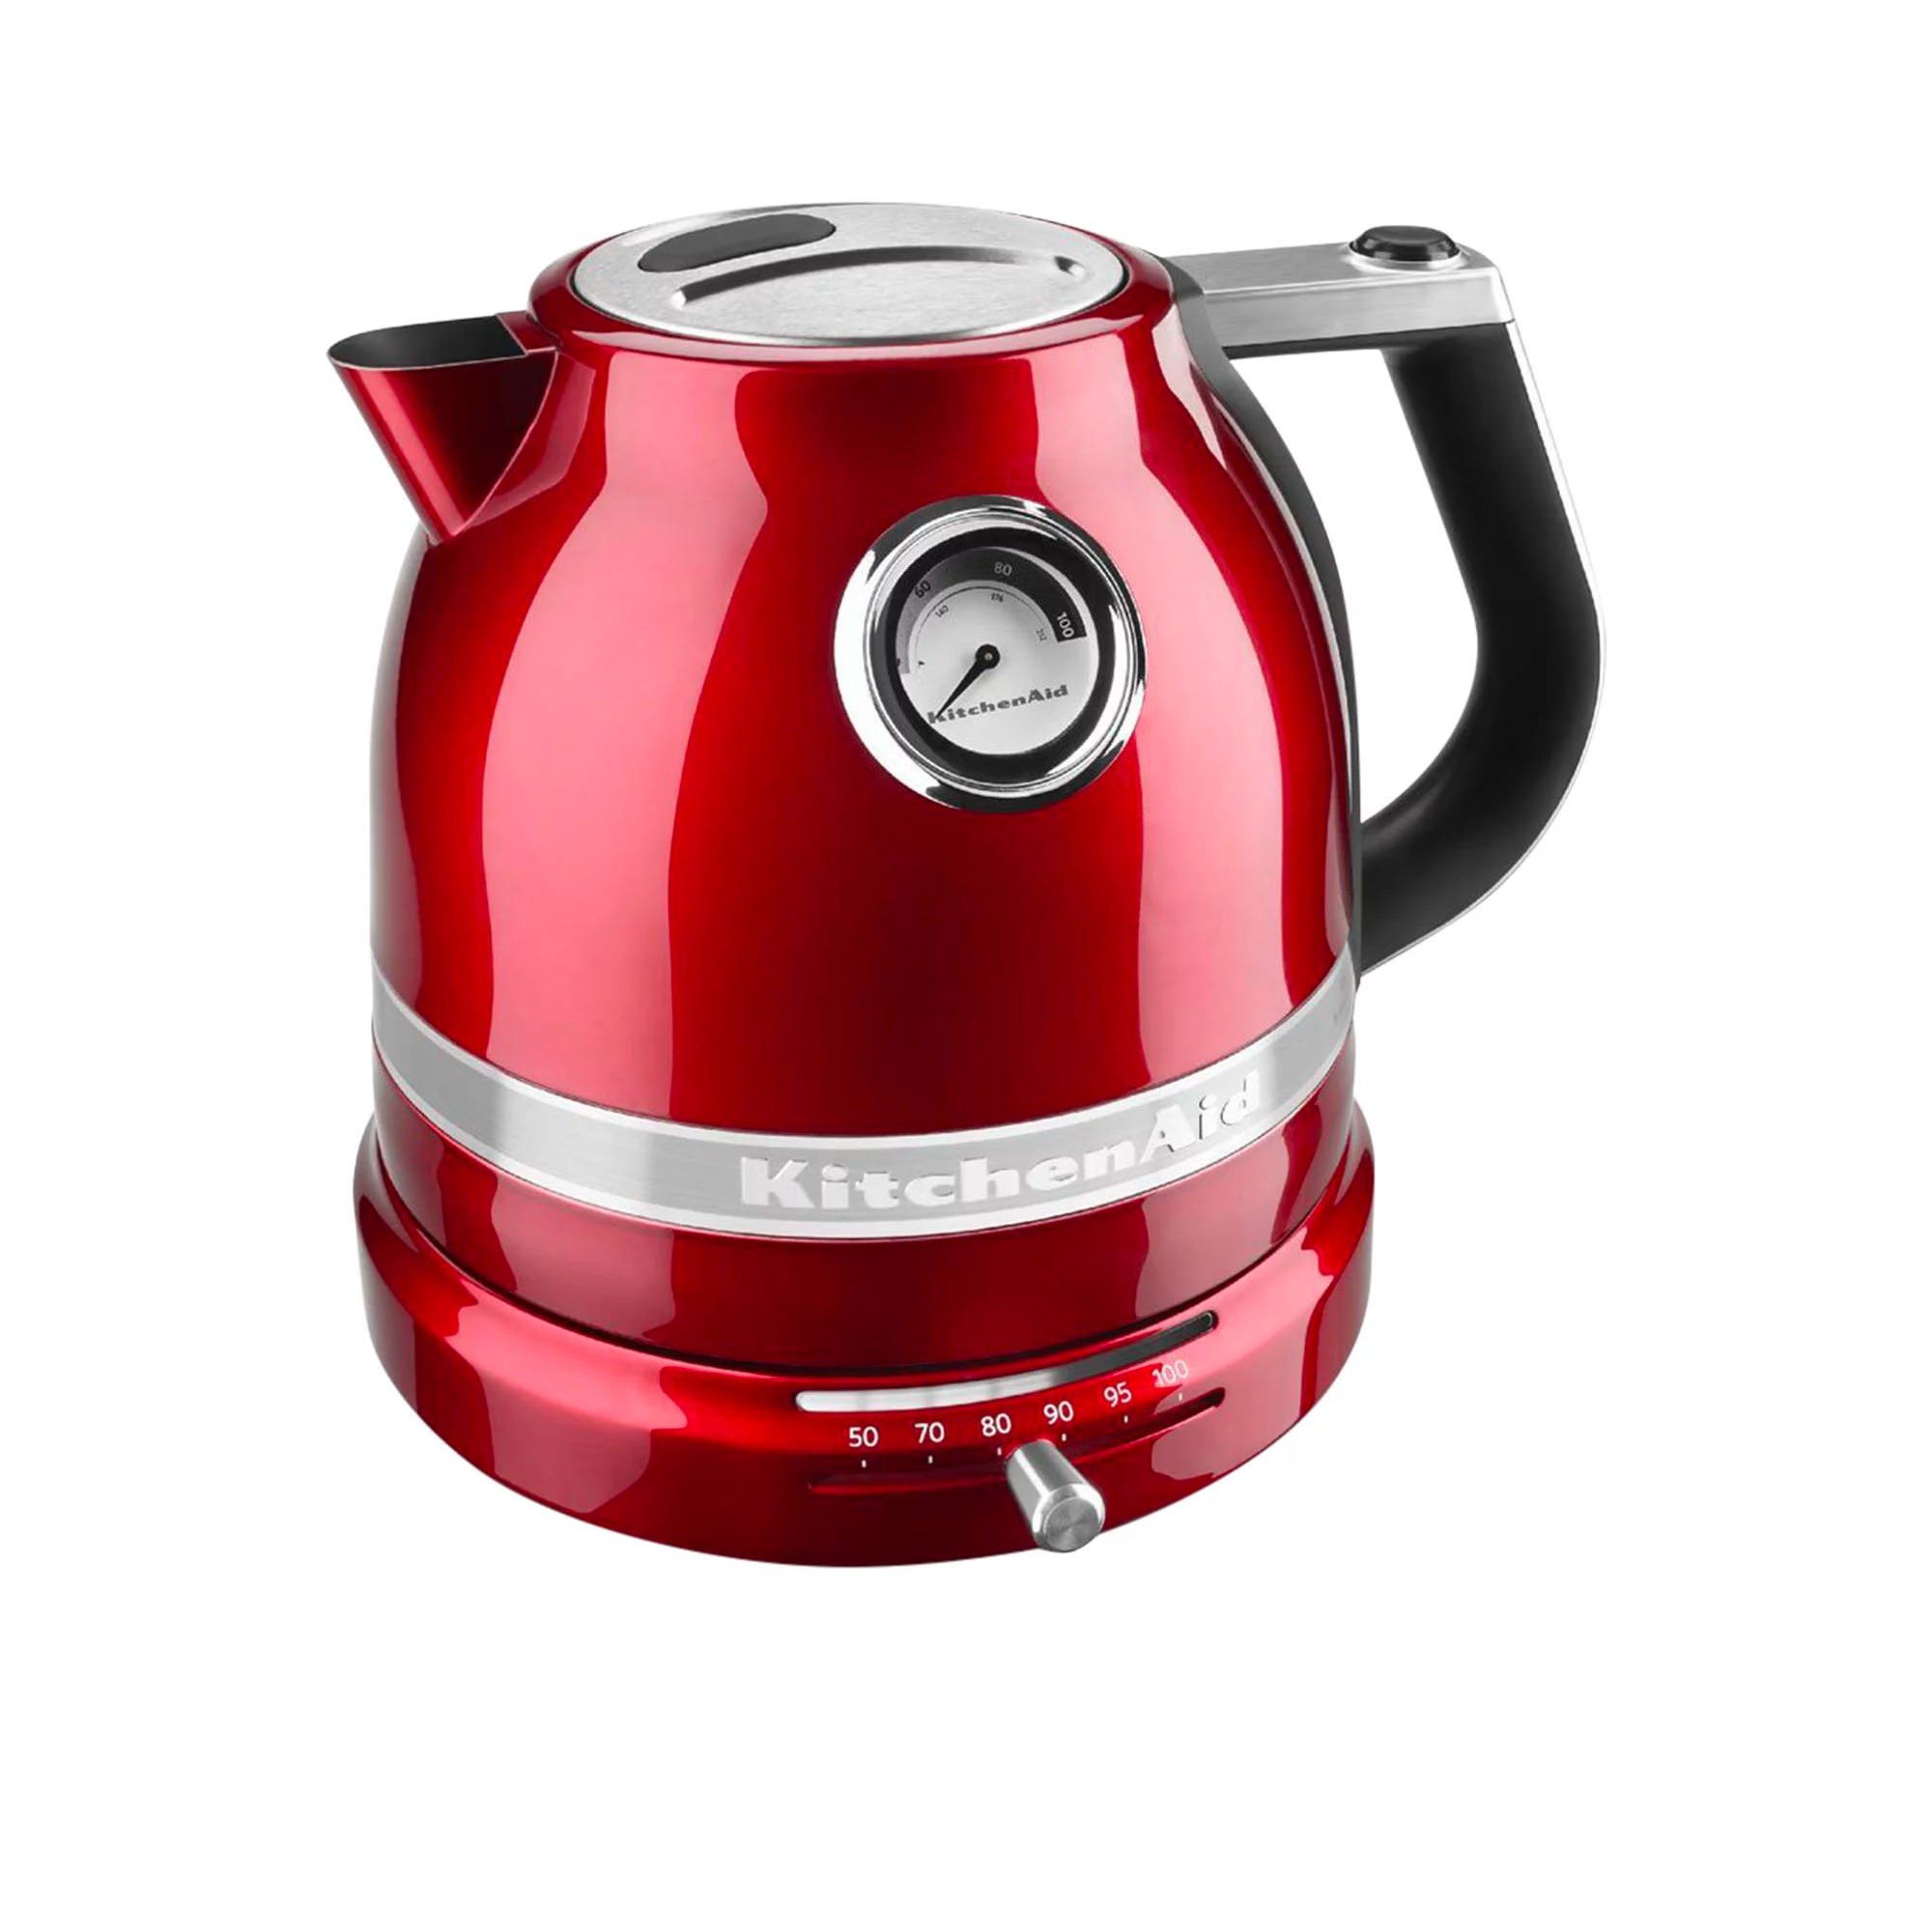 KitchenAid Pro Line Electric Kettle 1.5L Candy Apple Red